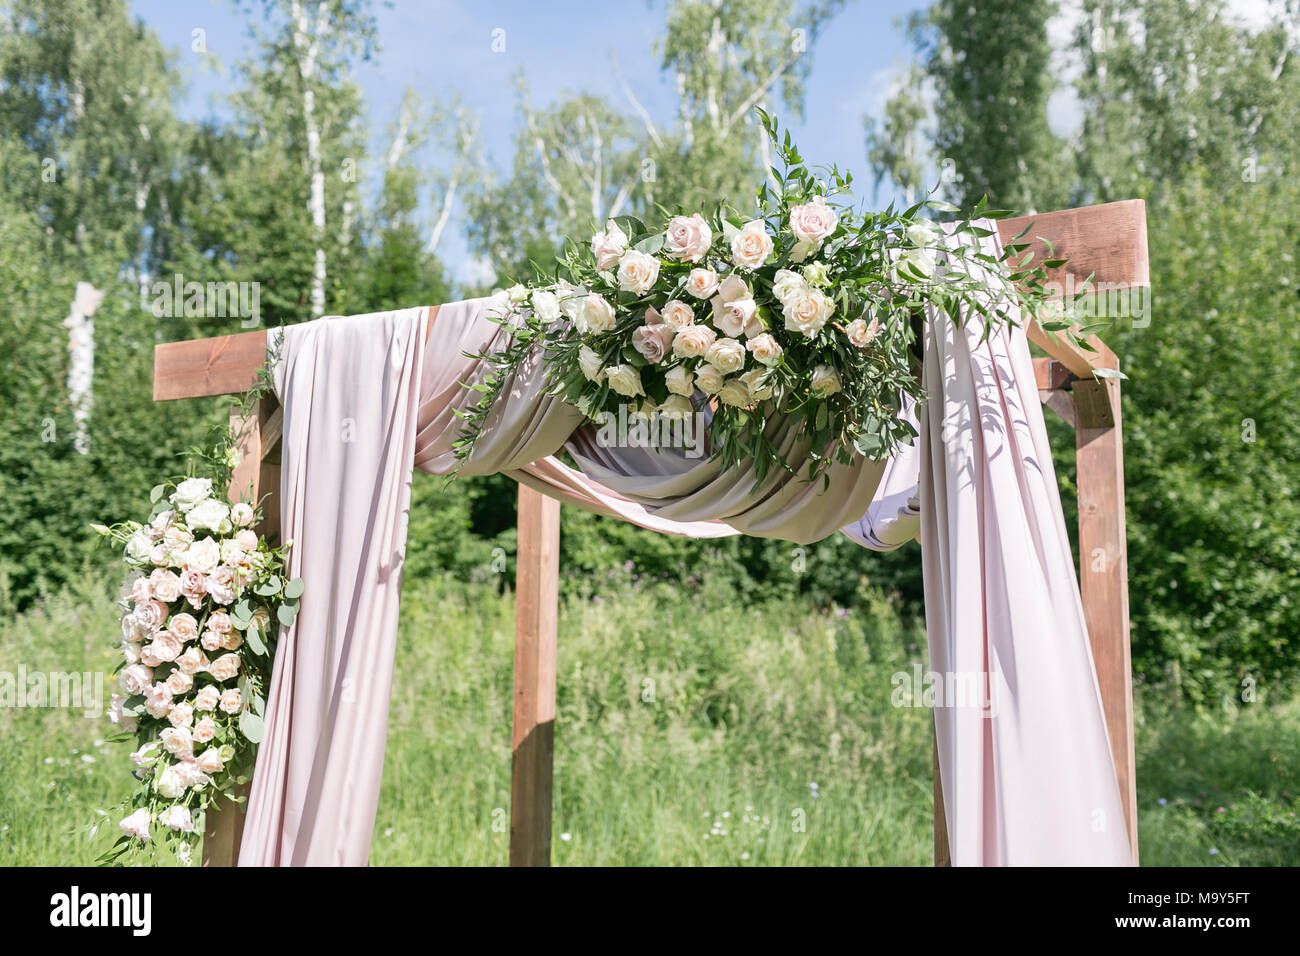 Wooden arch decorated with flowers are in the zone of the wedding wooden arch decorated with flowers are in the zone of the wedding ceremony in a forest junglespirit Choice Image